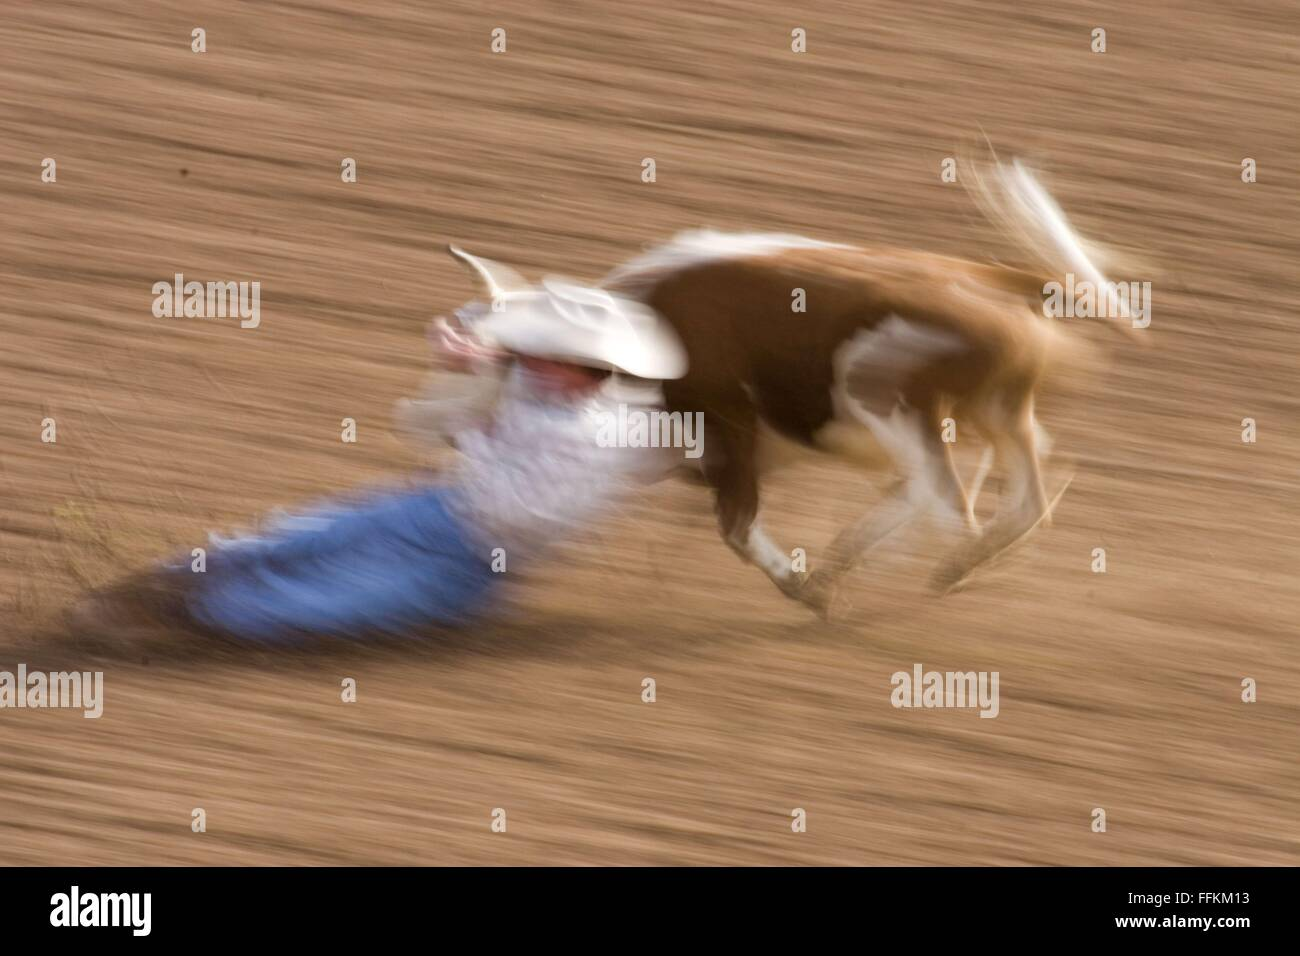 Tucson, Arizona, USA. 17th Feb, 2013. Rodeo blurred action with cowboy on the ground © David H. Wells/ZUMA - Stock Image